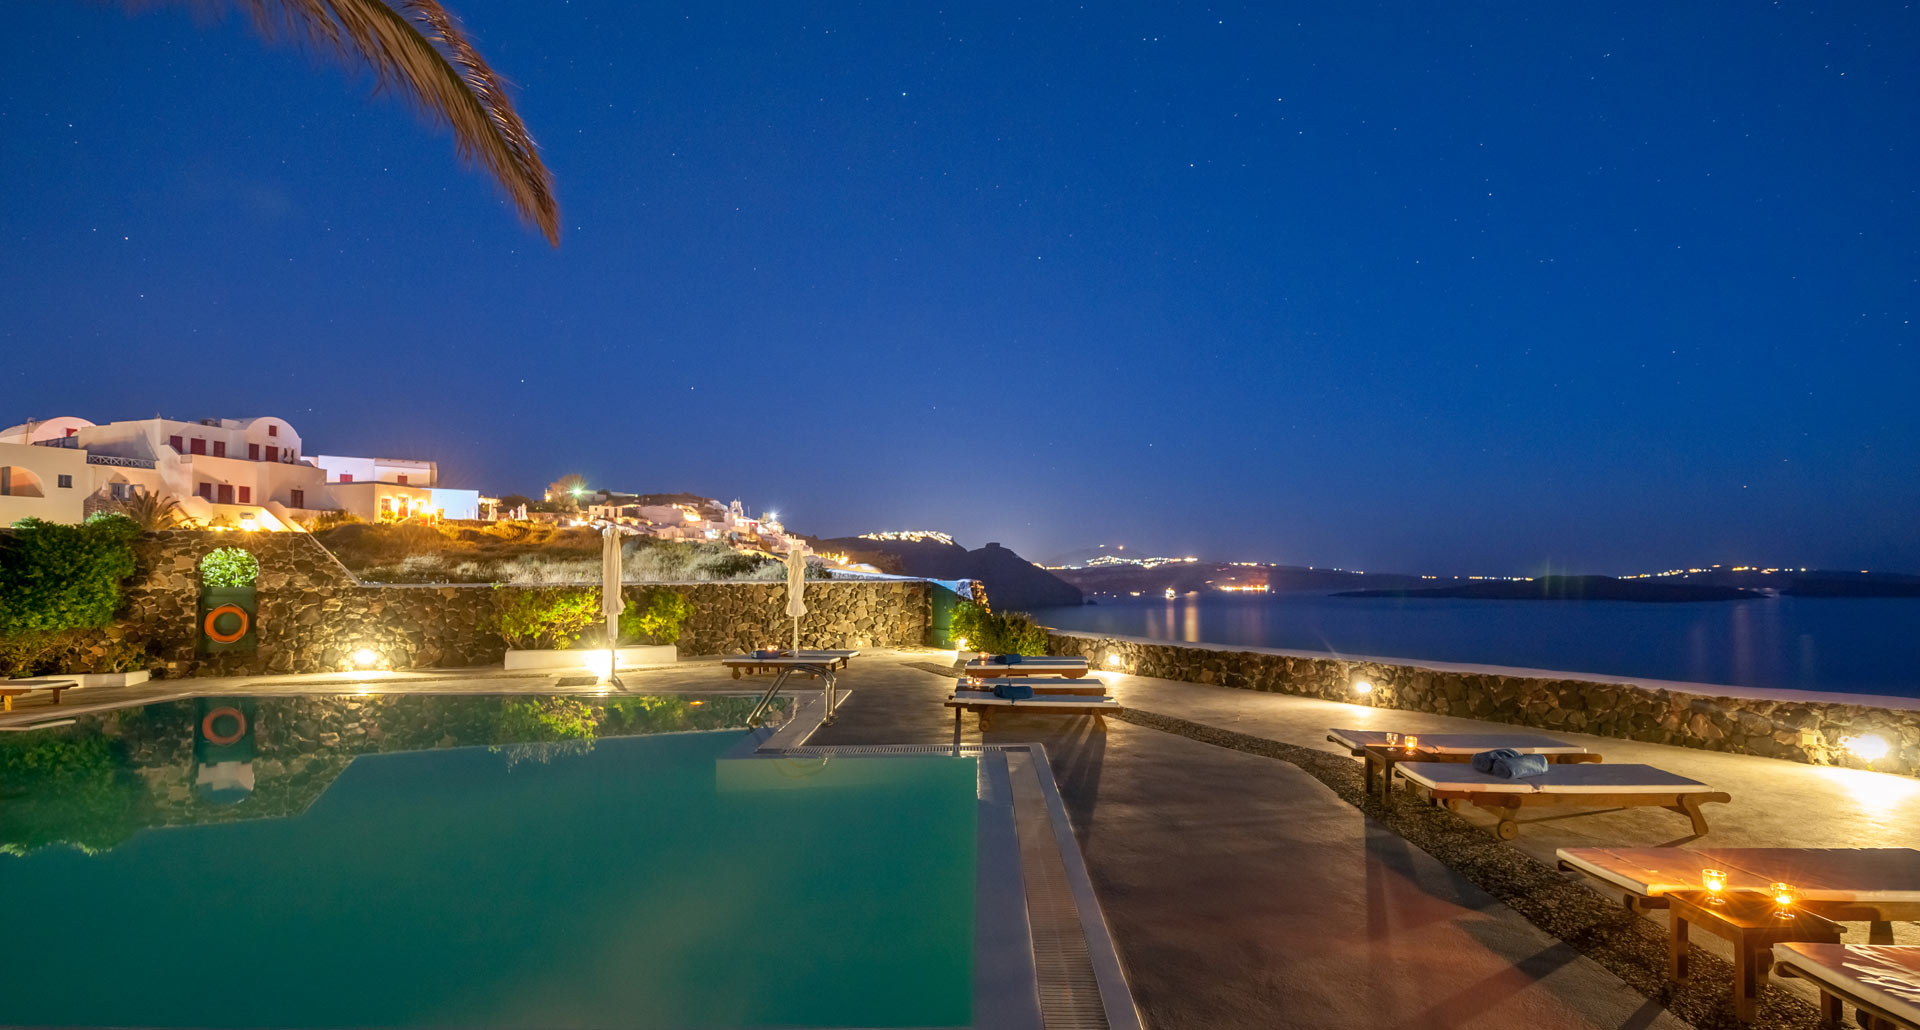 Strogili Apartments Oia Santorini – The pool by night